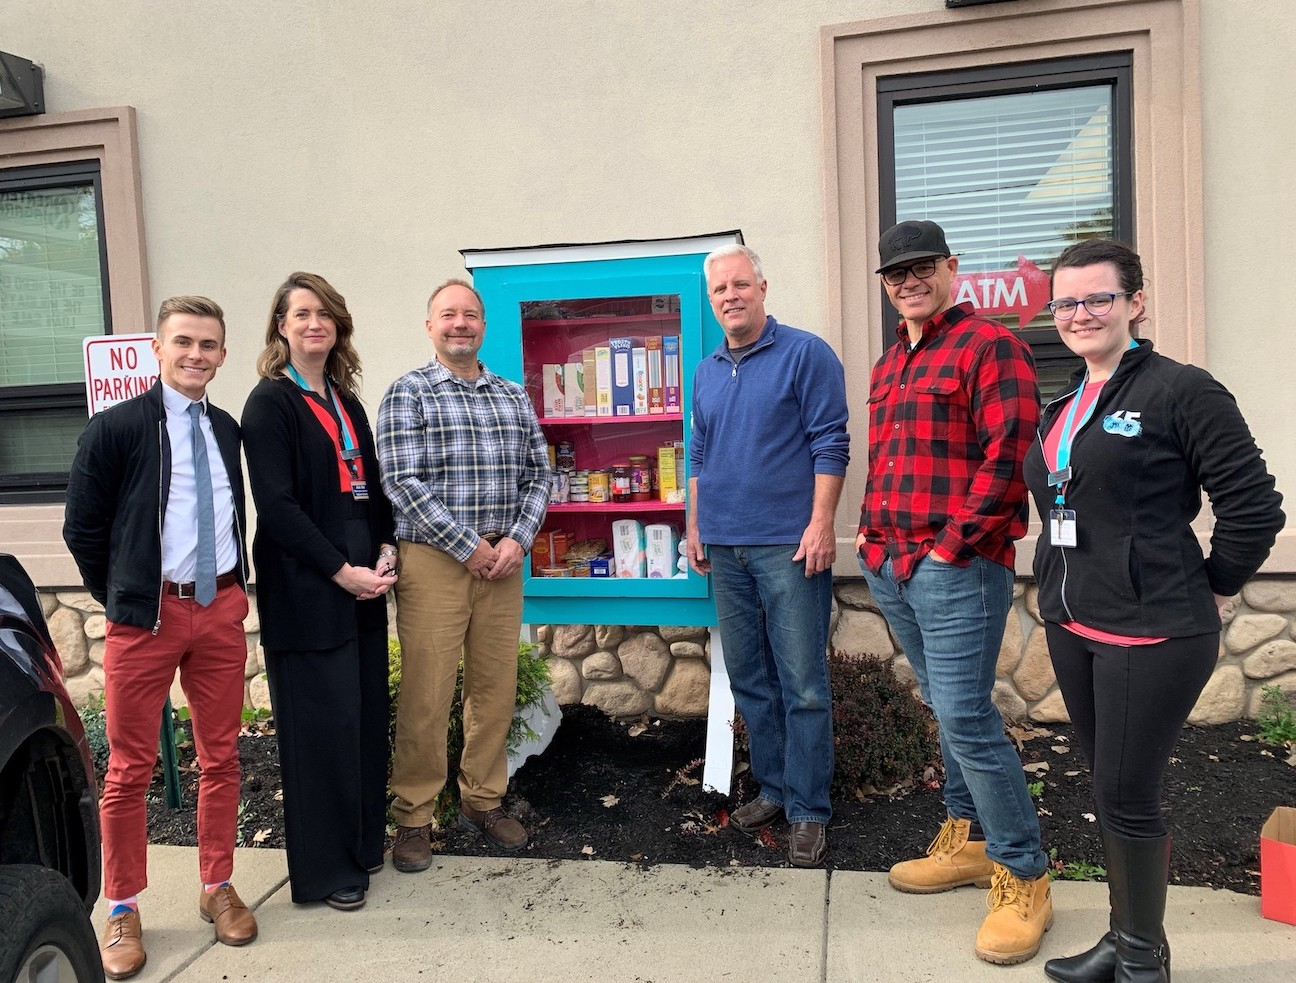 From left, Austin Tylec, Jennifer Grier (Greater Niagara Federal Credit Union), Ed Smolinski, Bob Brennan, Chad Rieselman (Lumber City Church) and Maggie Wilmore (Greater Niagara Federal Credit Union)